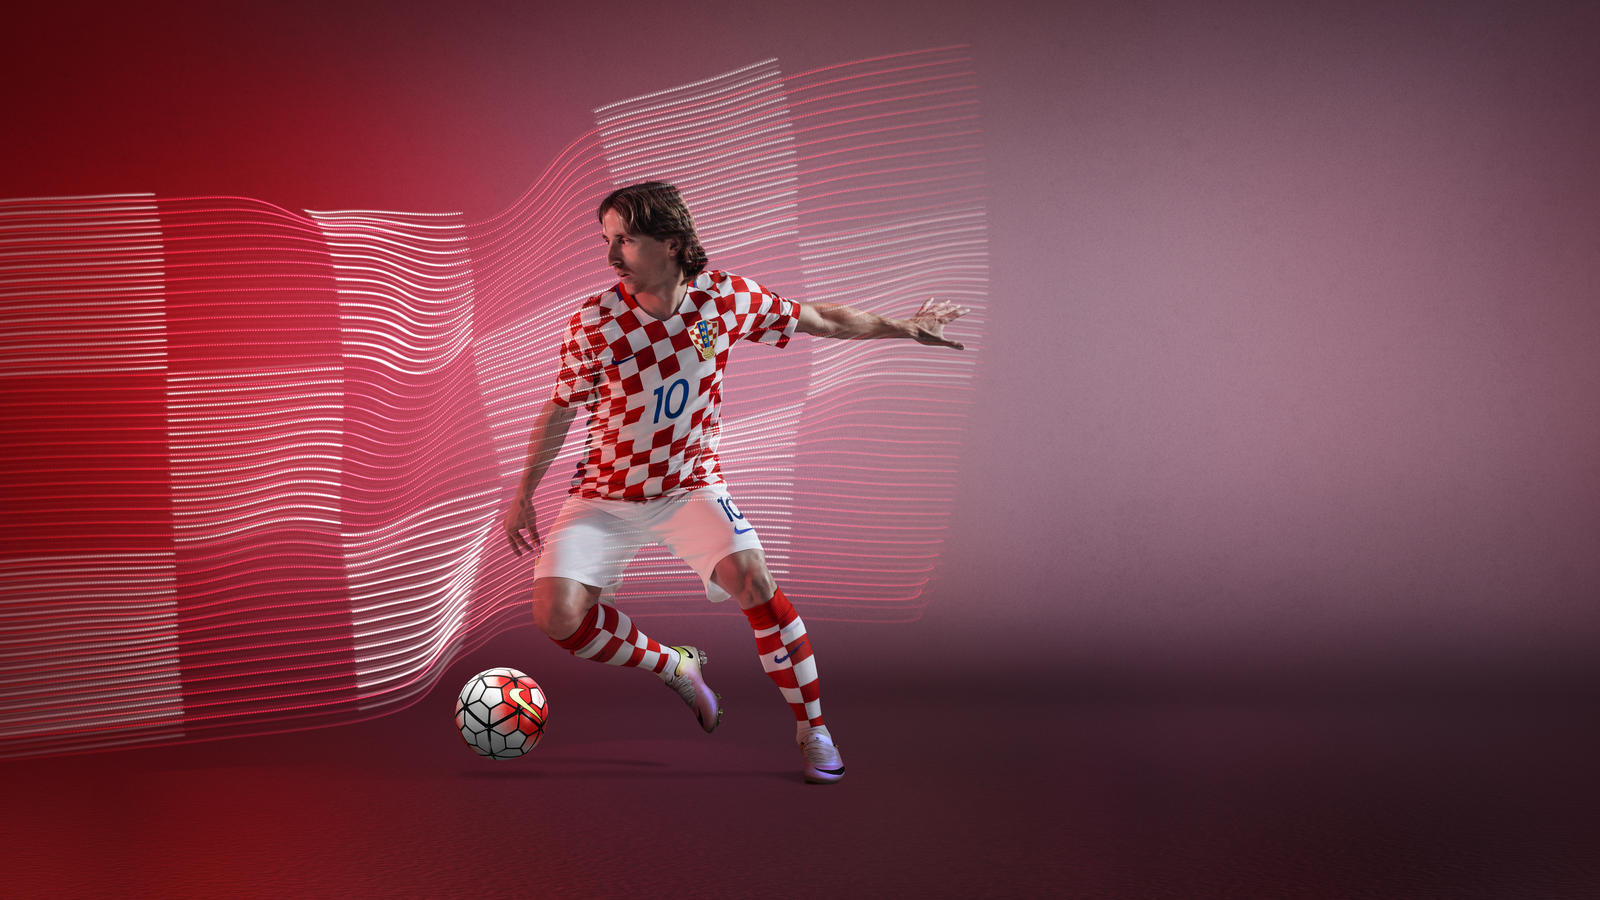 Cute Love Heart Wallpapers For Mobile Luka Modric Wallpapers Hd